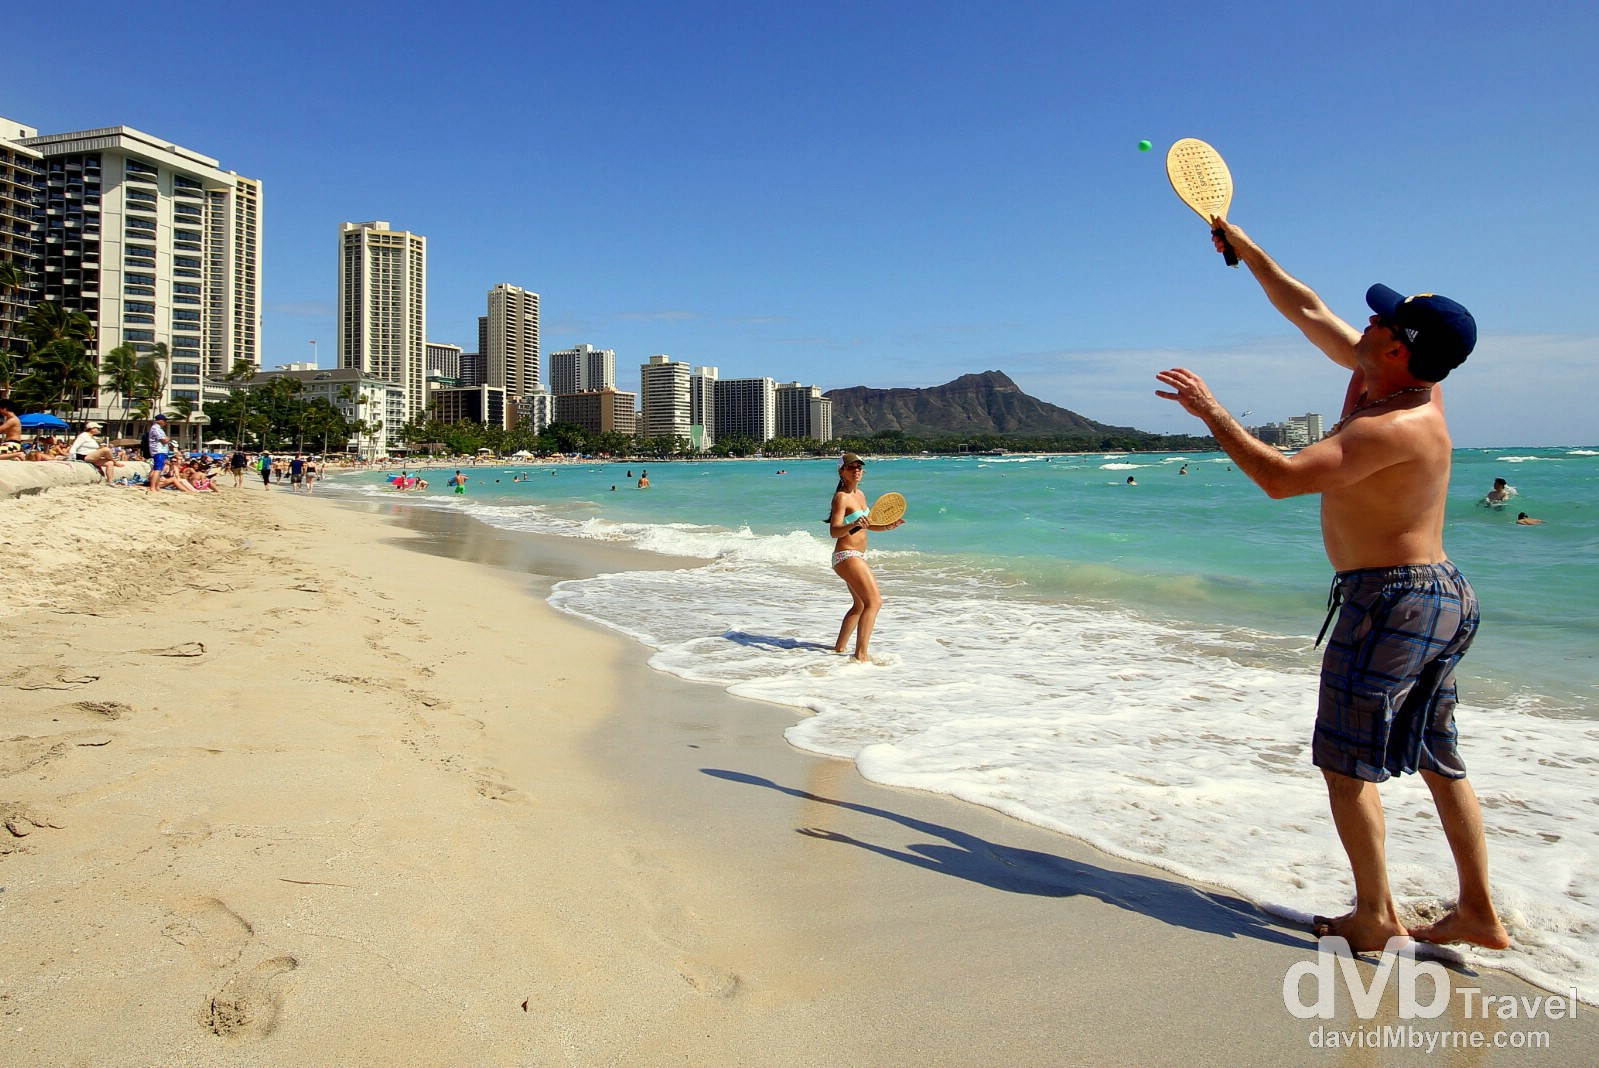 Paddle ball on Waikiki Beach with the Waikiki landmark of Diamond Head in the distance. Oahu, Hawaii, USA. March 9th 2013.